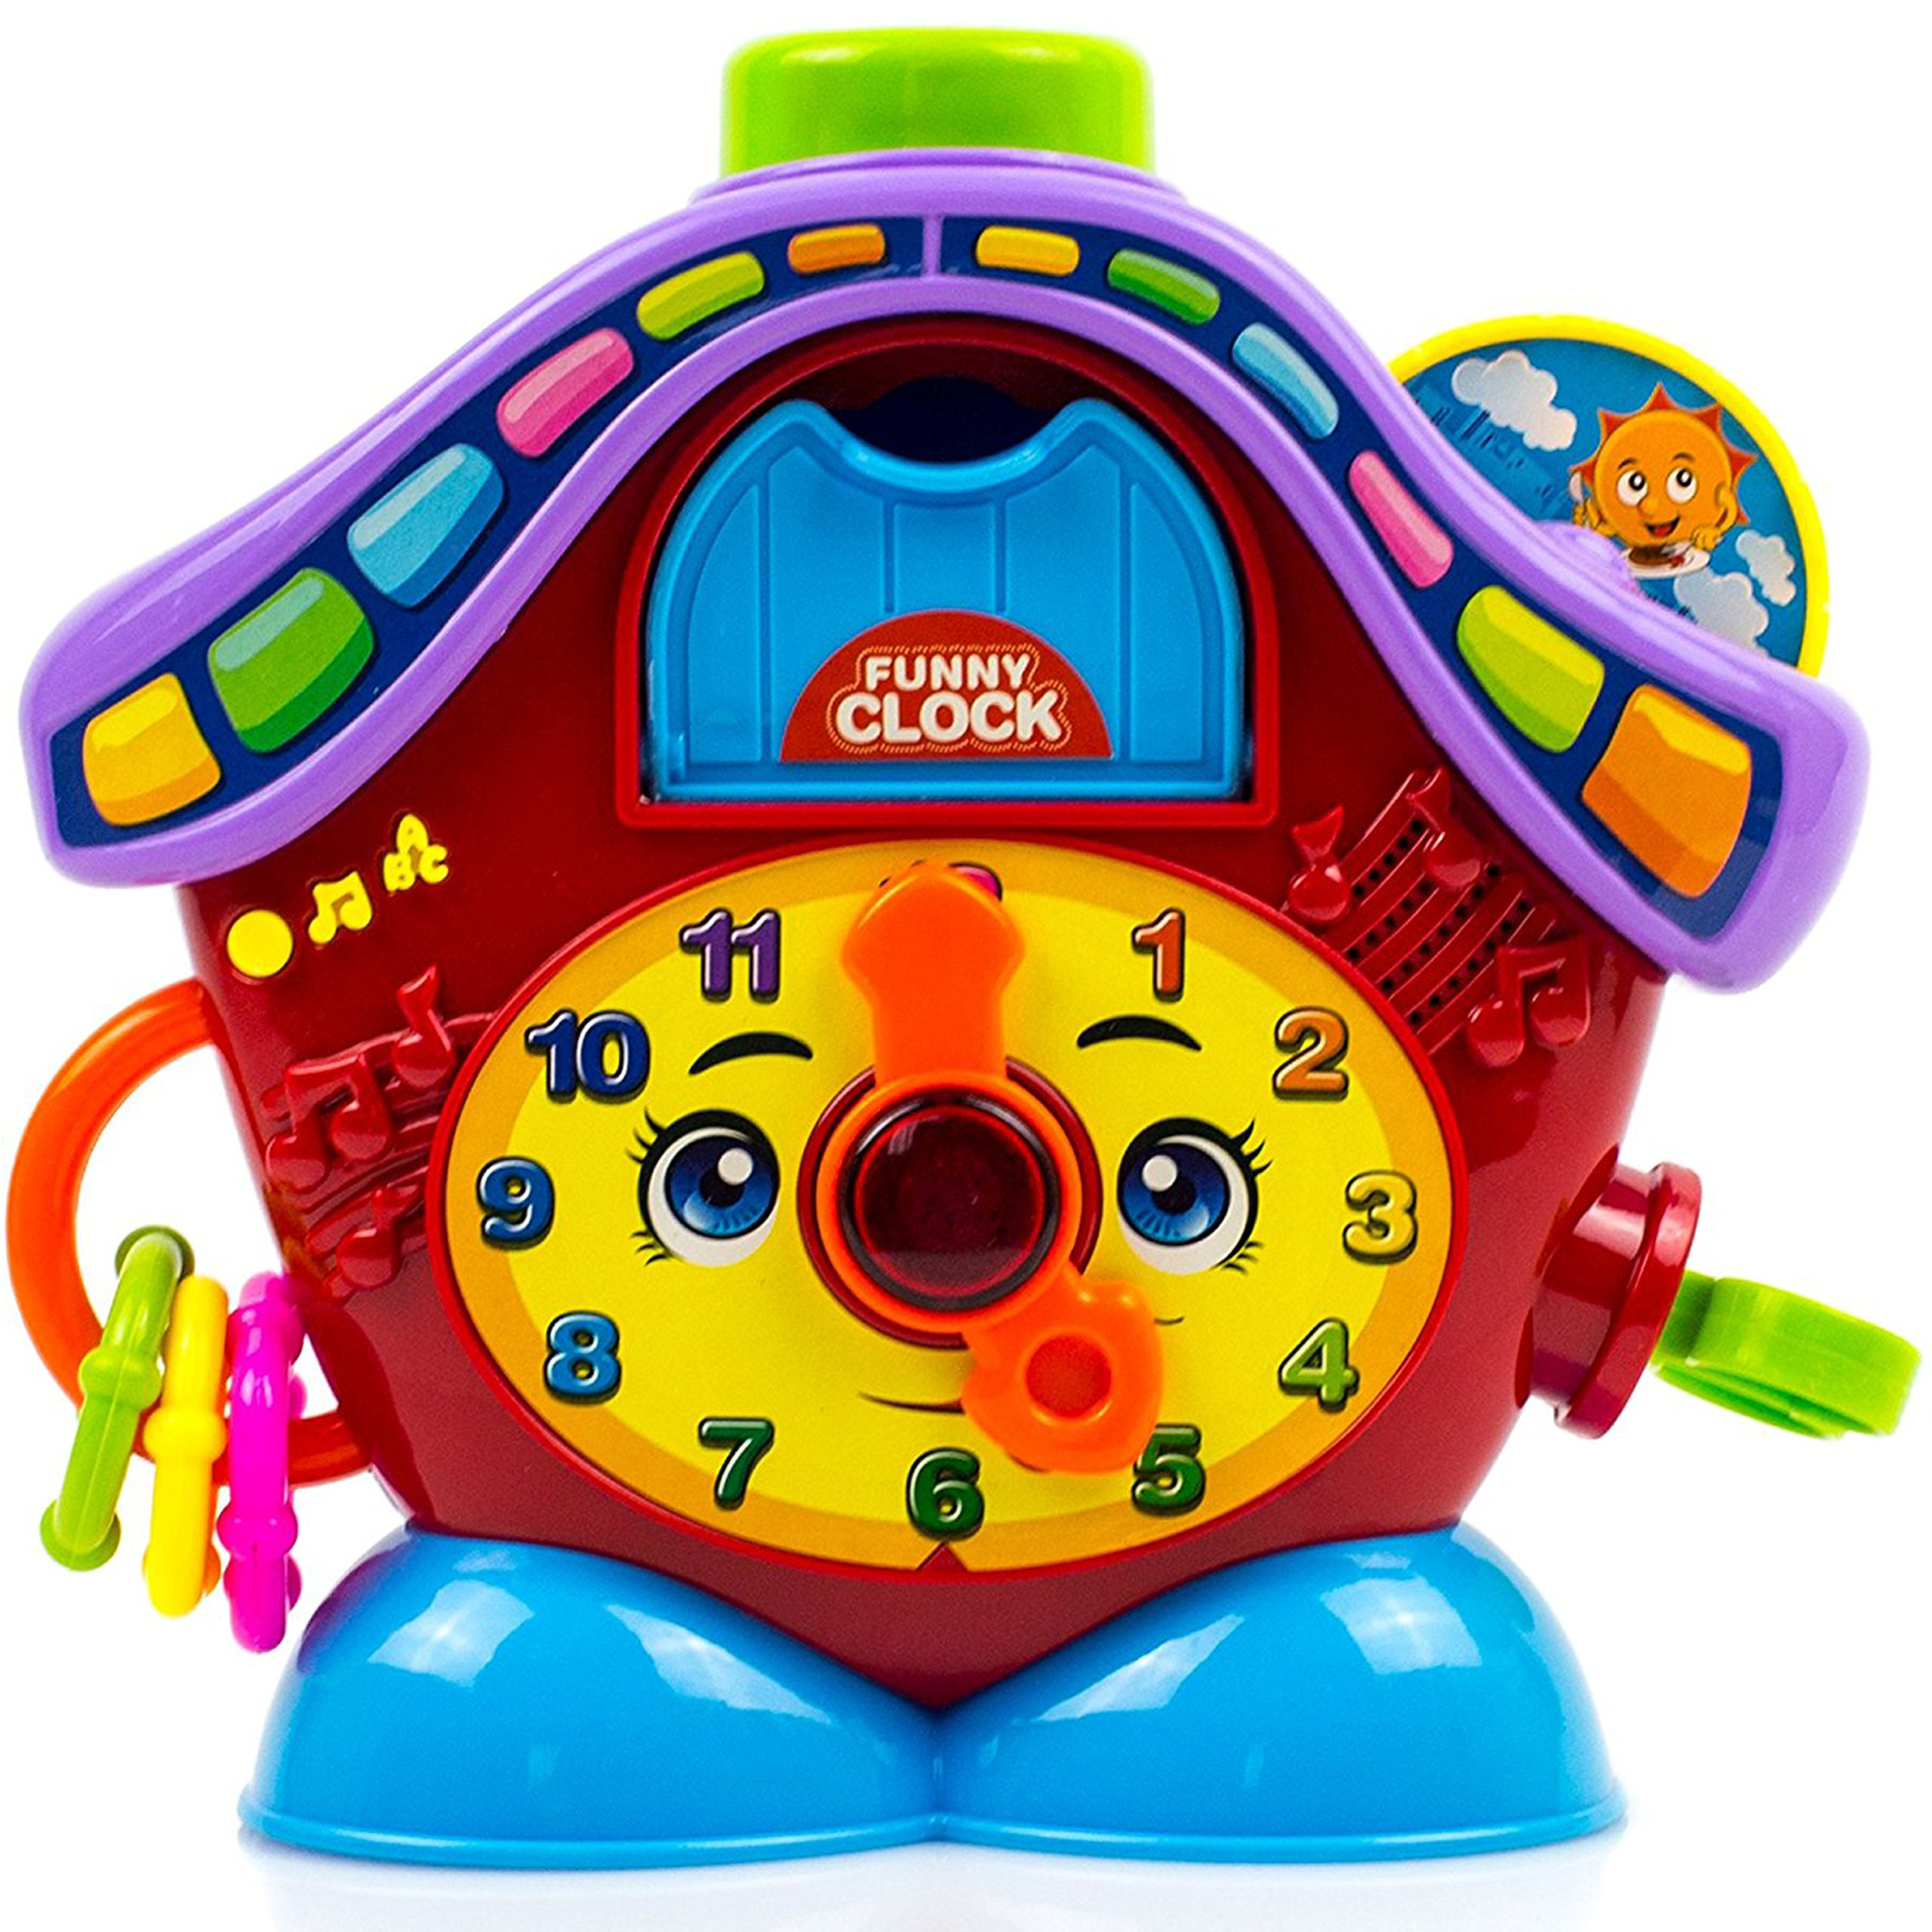 Toysery Clock Toys for Kids - Early Educational Toy for Toddler, Babies - Great Gift Idea